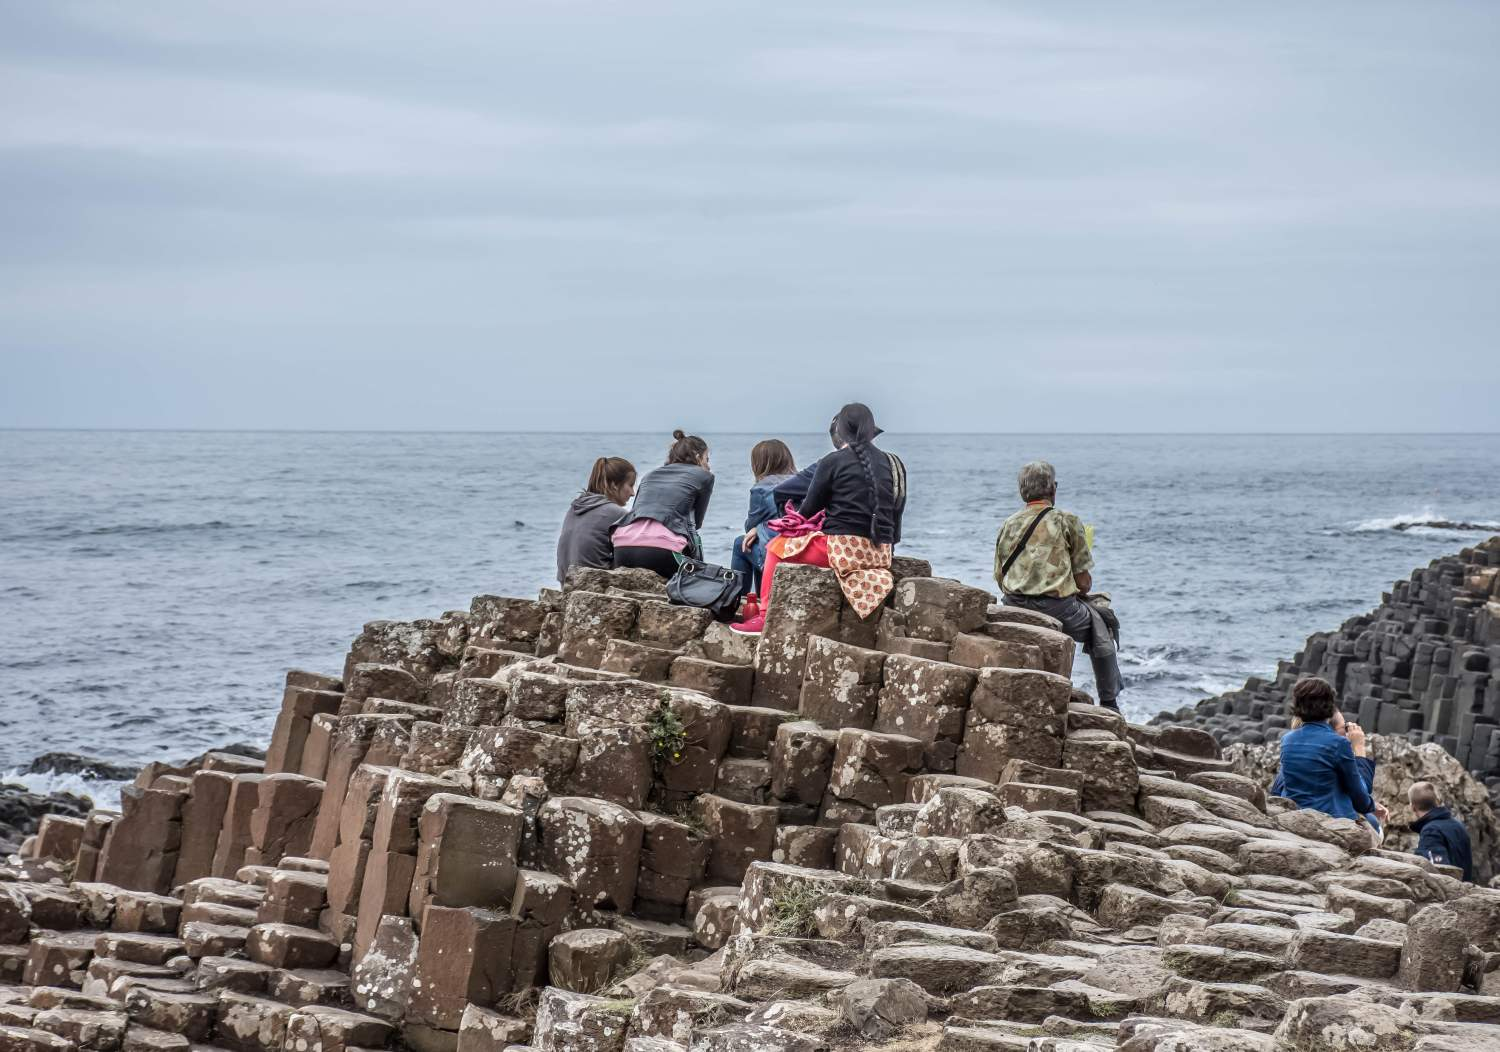 The giant causeway, cult area of Ireland